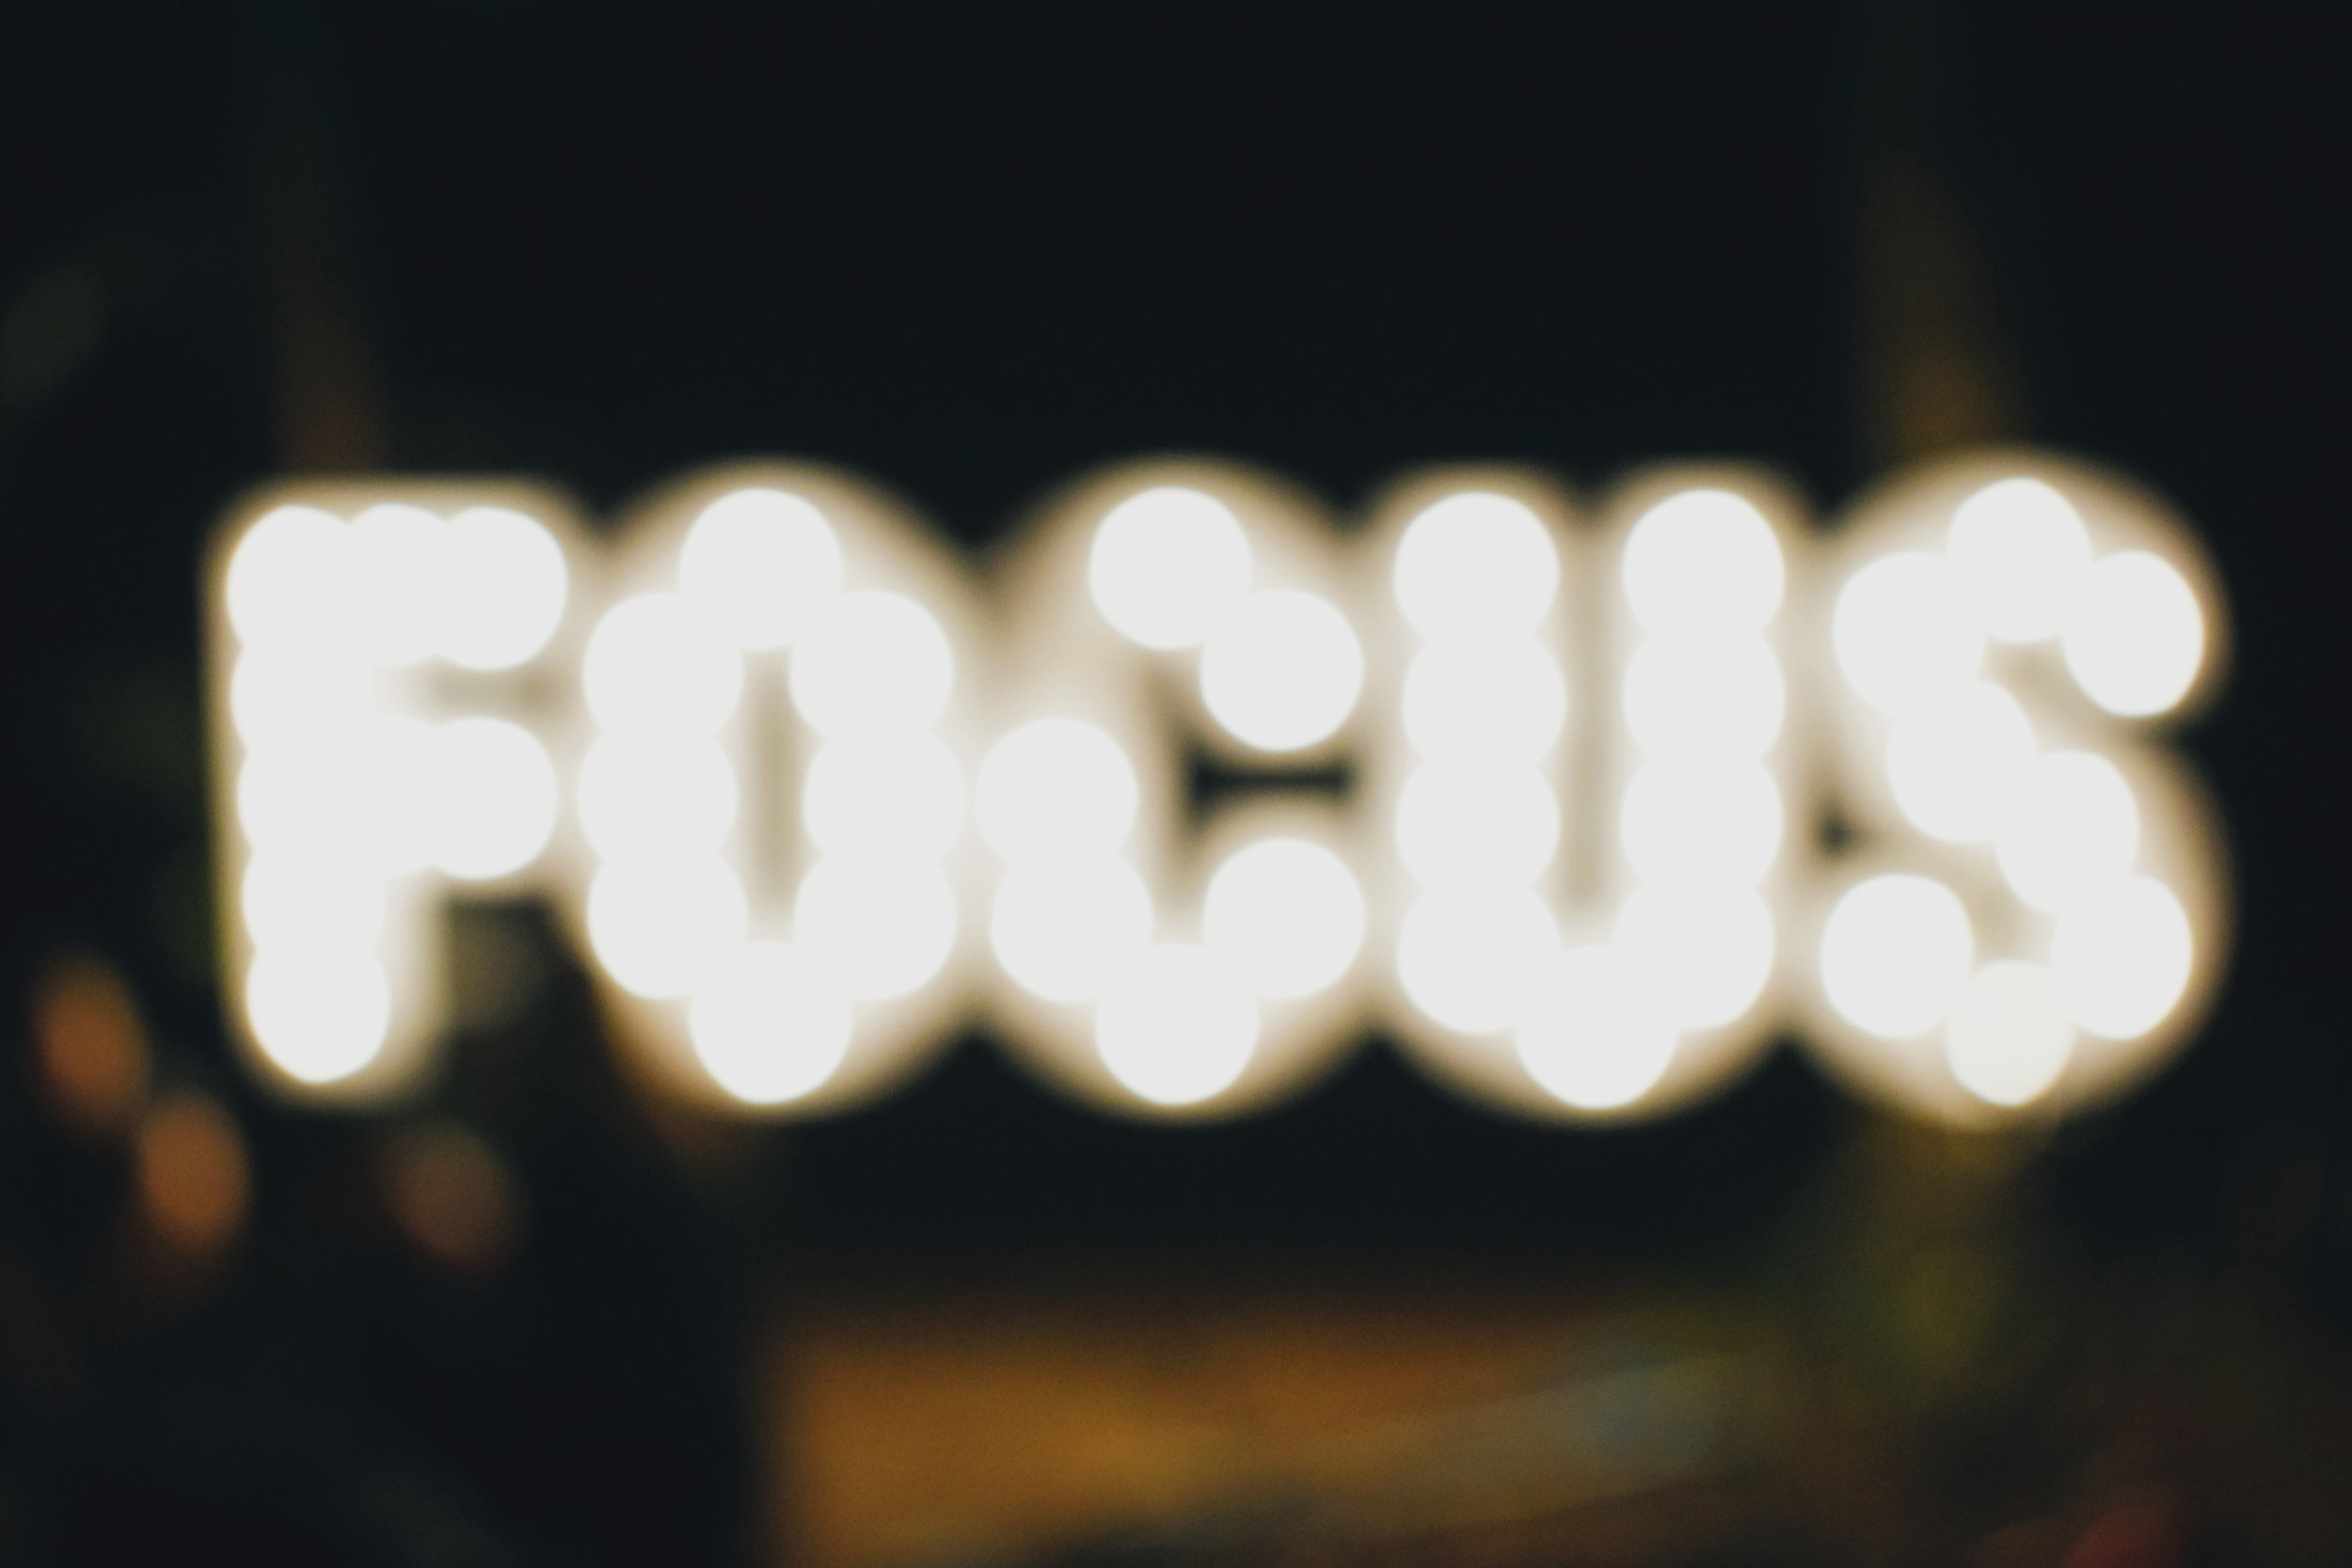 Focus. I know it's so hard to do these days with all the distractions